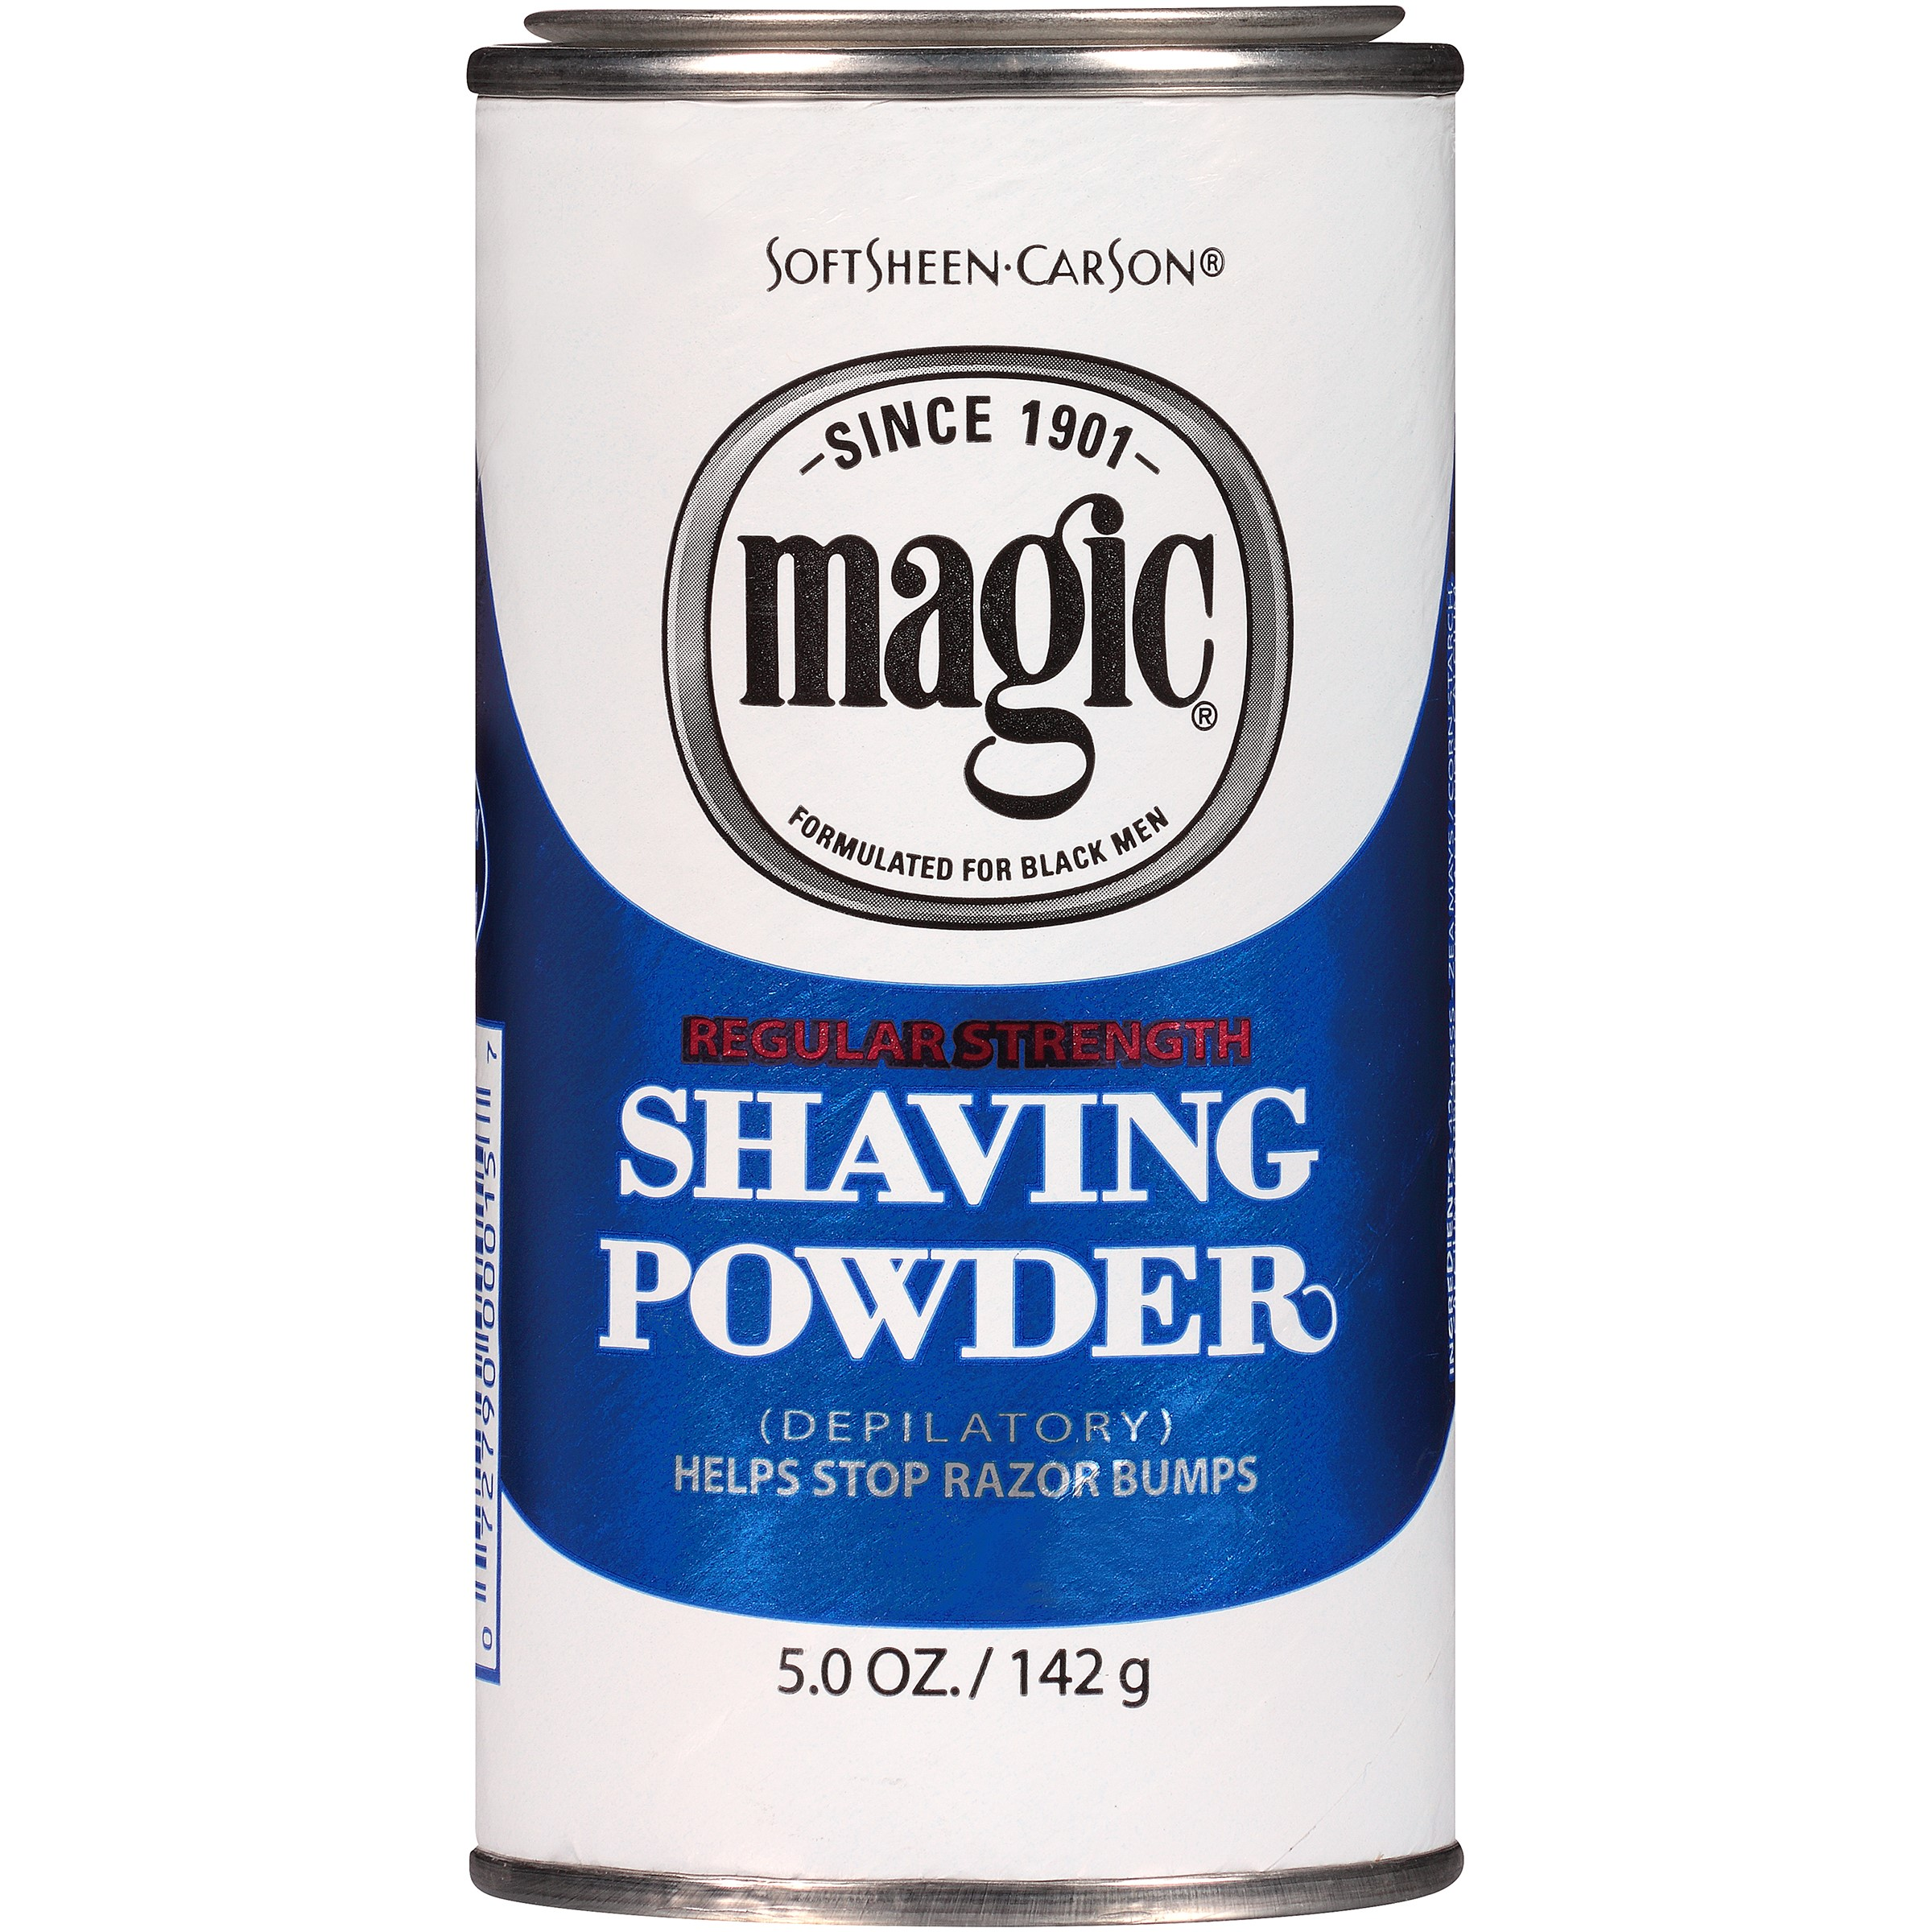 SoftSheen-Carson Magic Regular Strength Shaving Powder